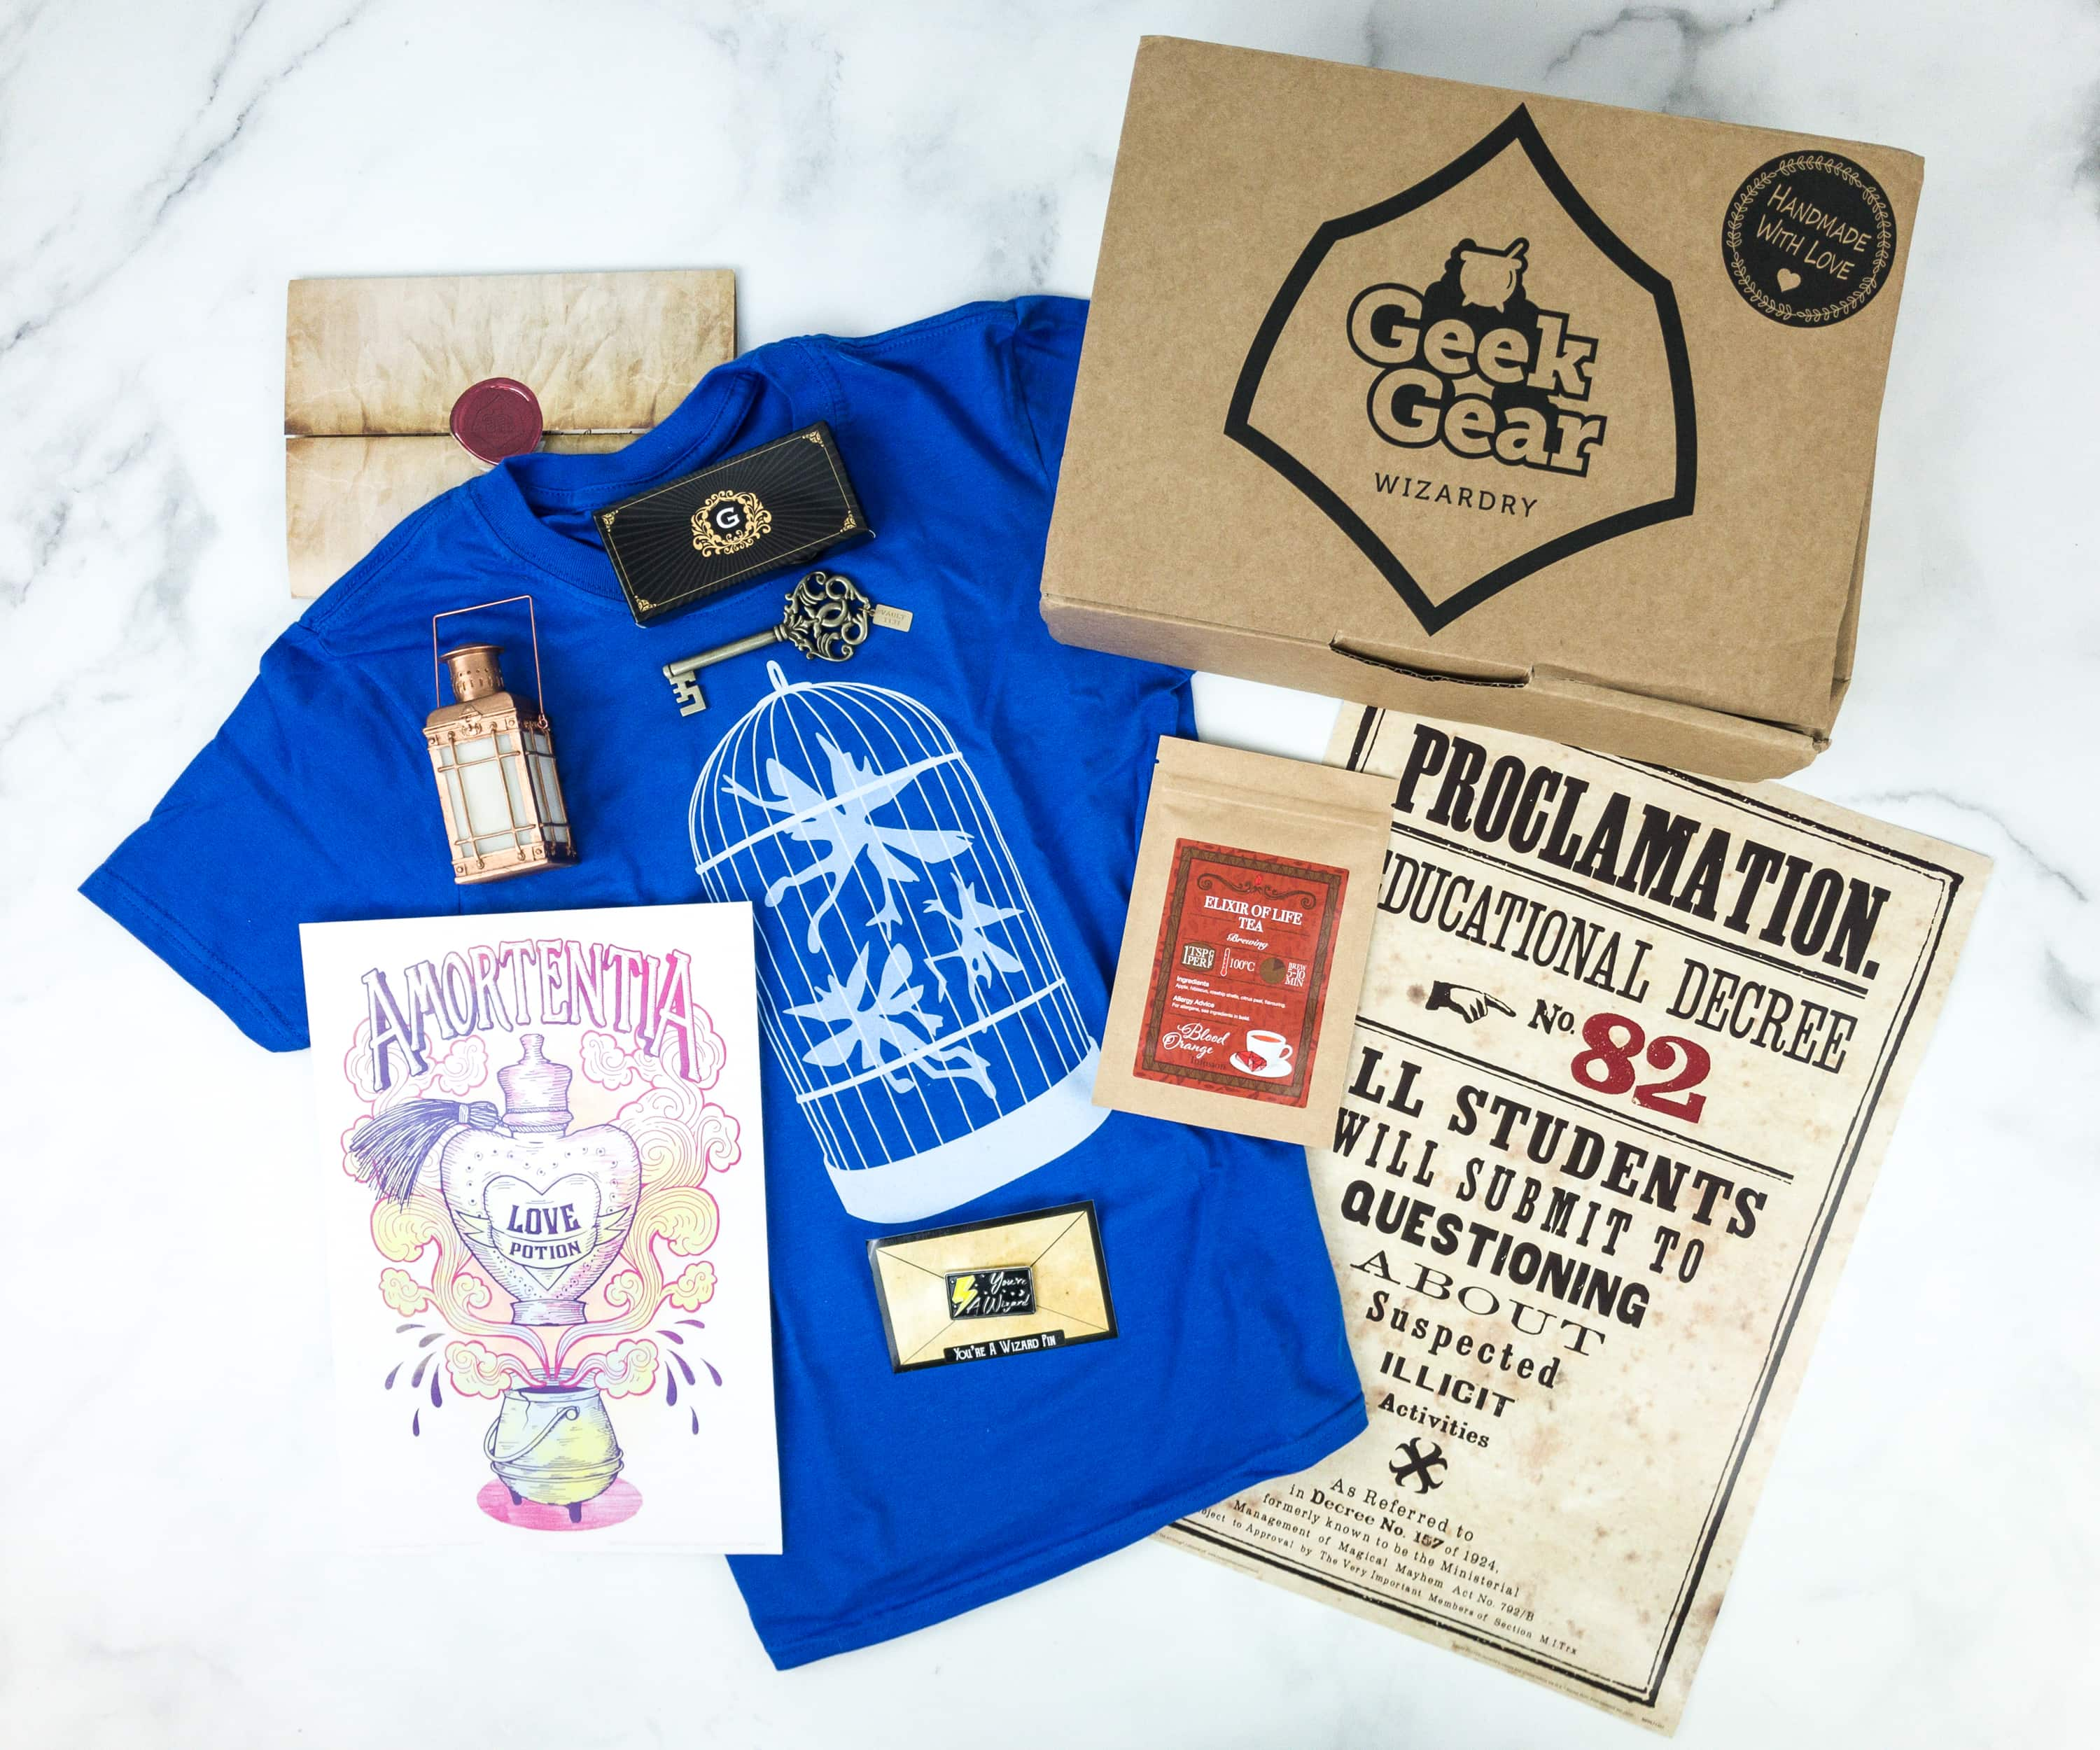 Geek Gear World of Wizardry May 2019 Subscription Box Review & Coupon